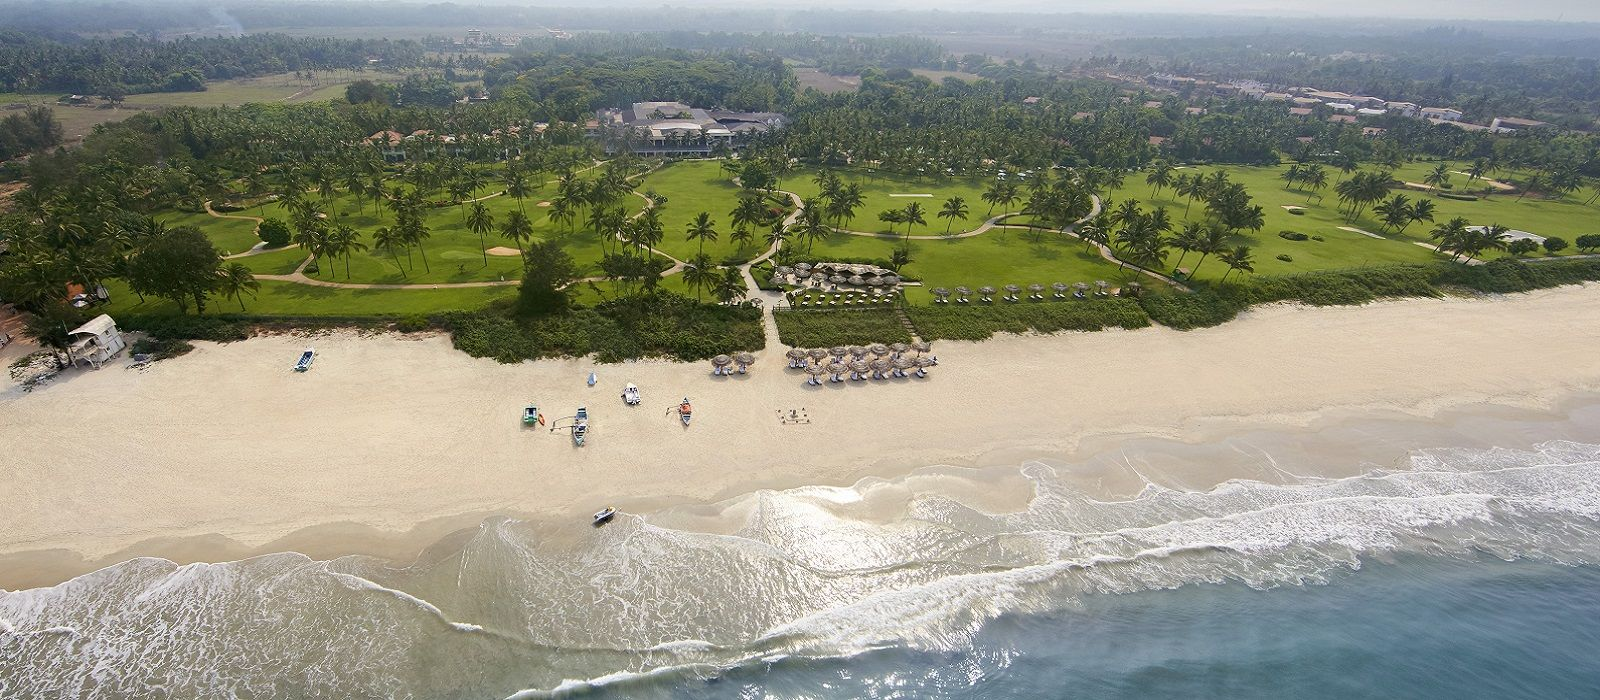 South India's Heritage Havens and Beach Tour Trip 4